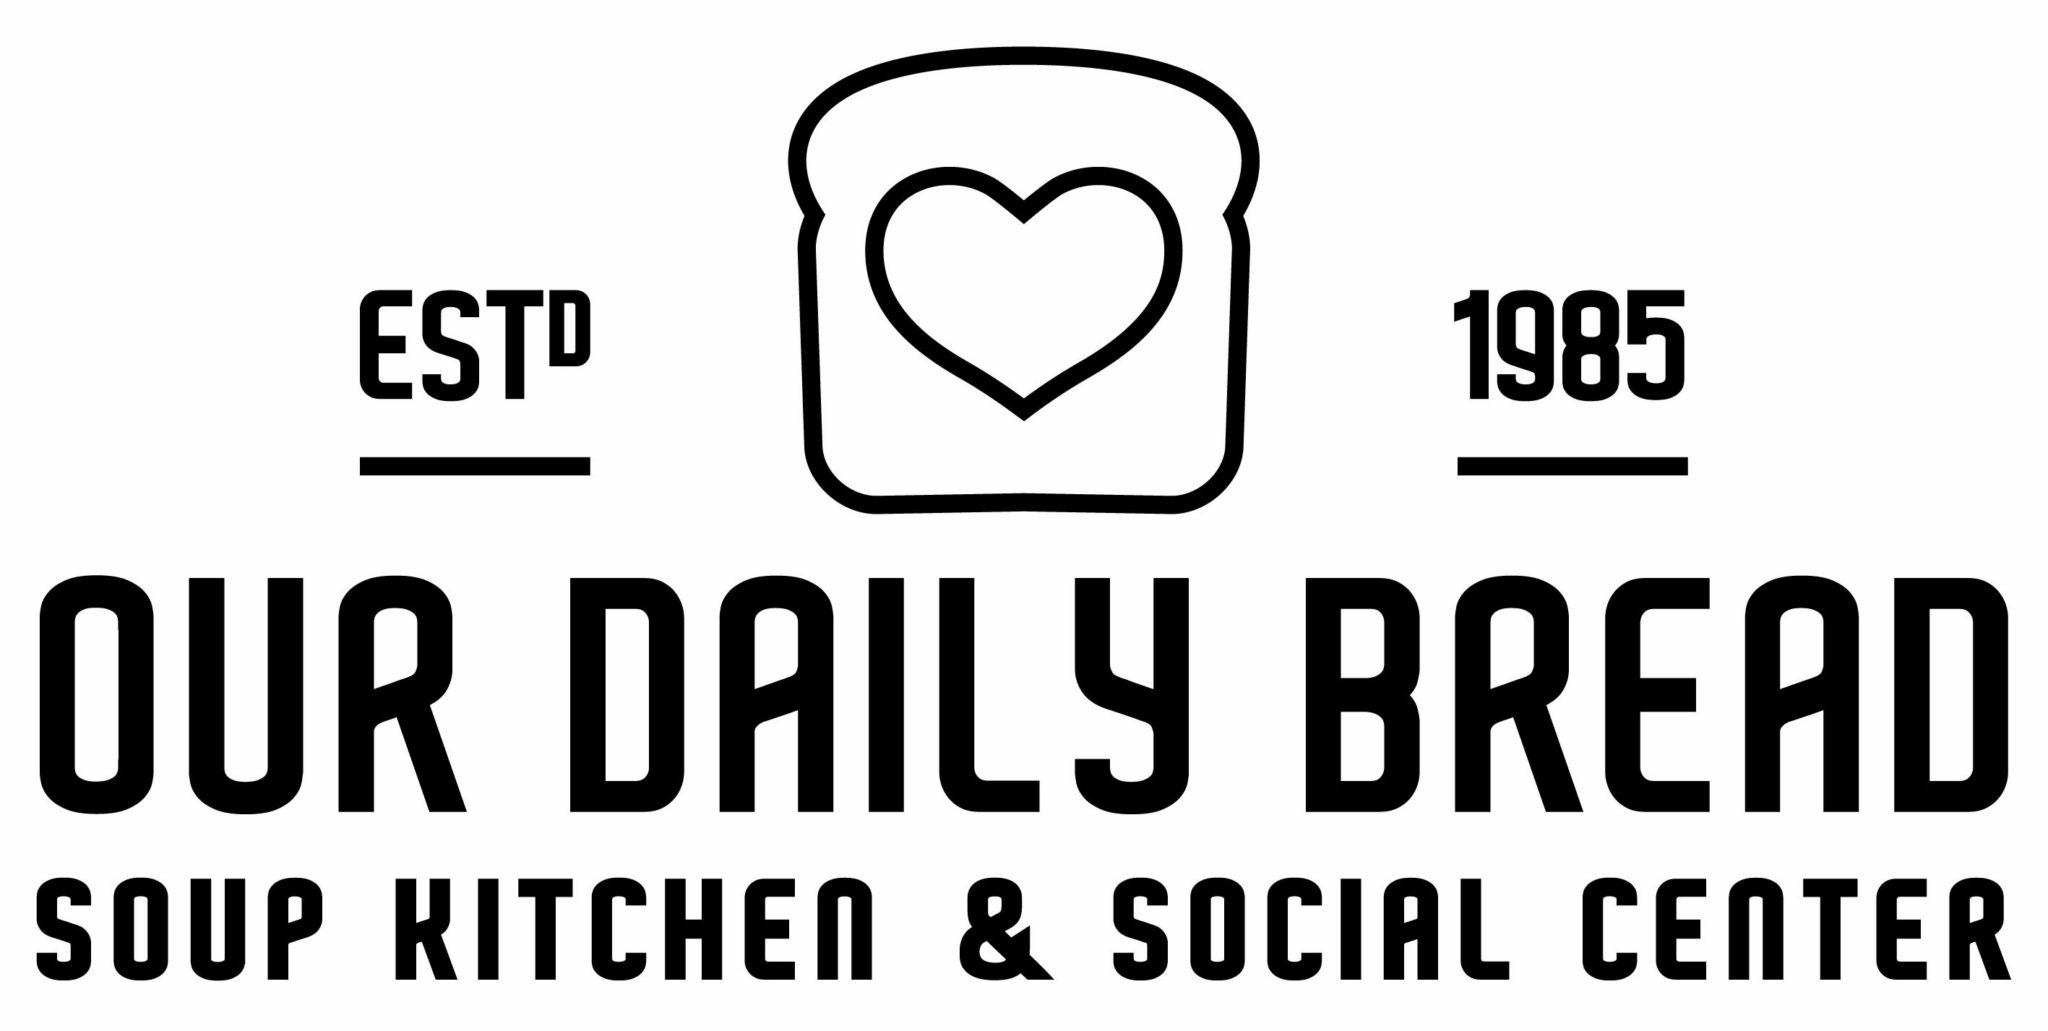 Logo Bw No Tagline 01 01 Our Daily Bread Soup Kitchen And